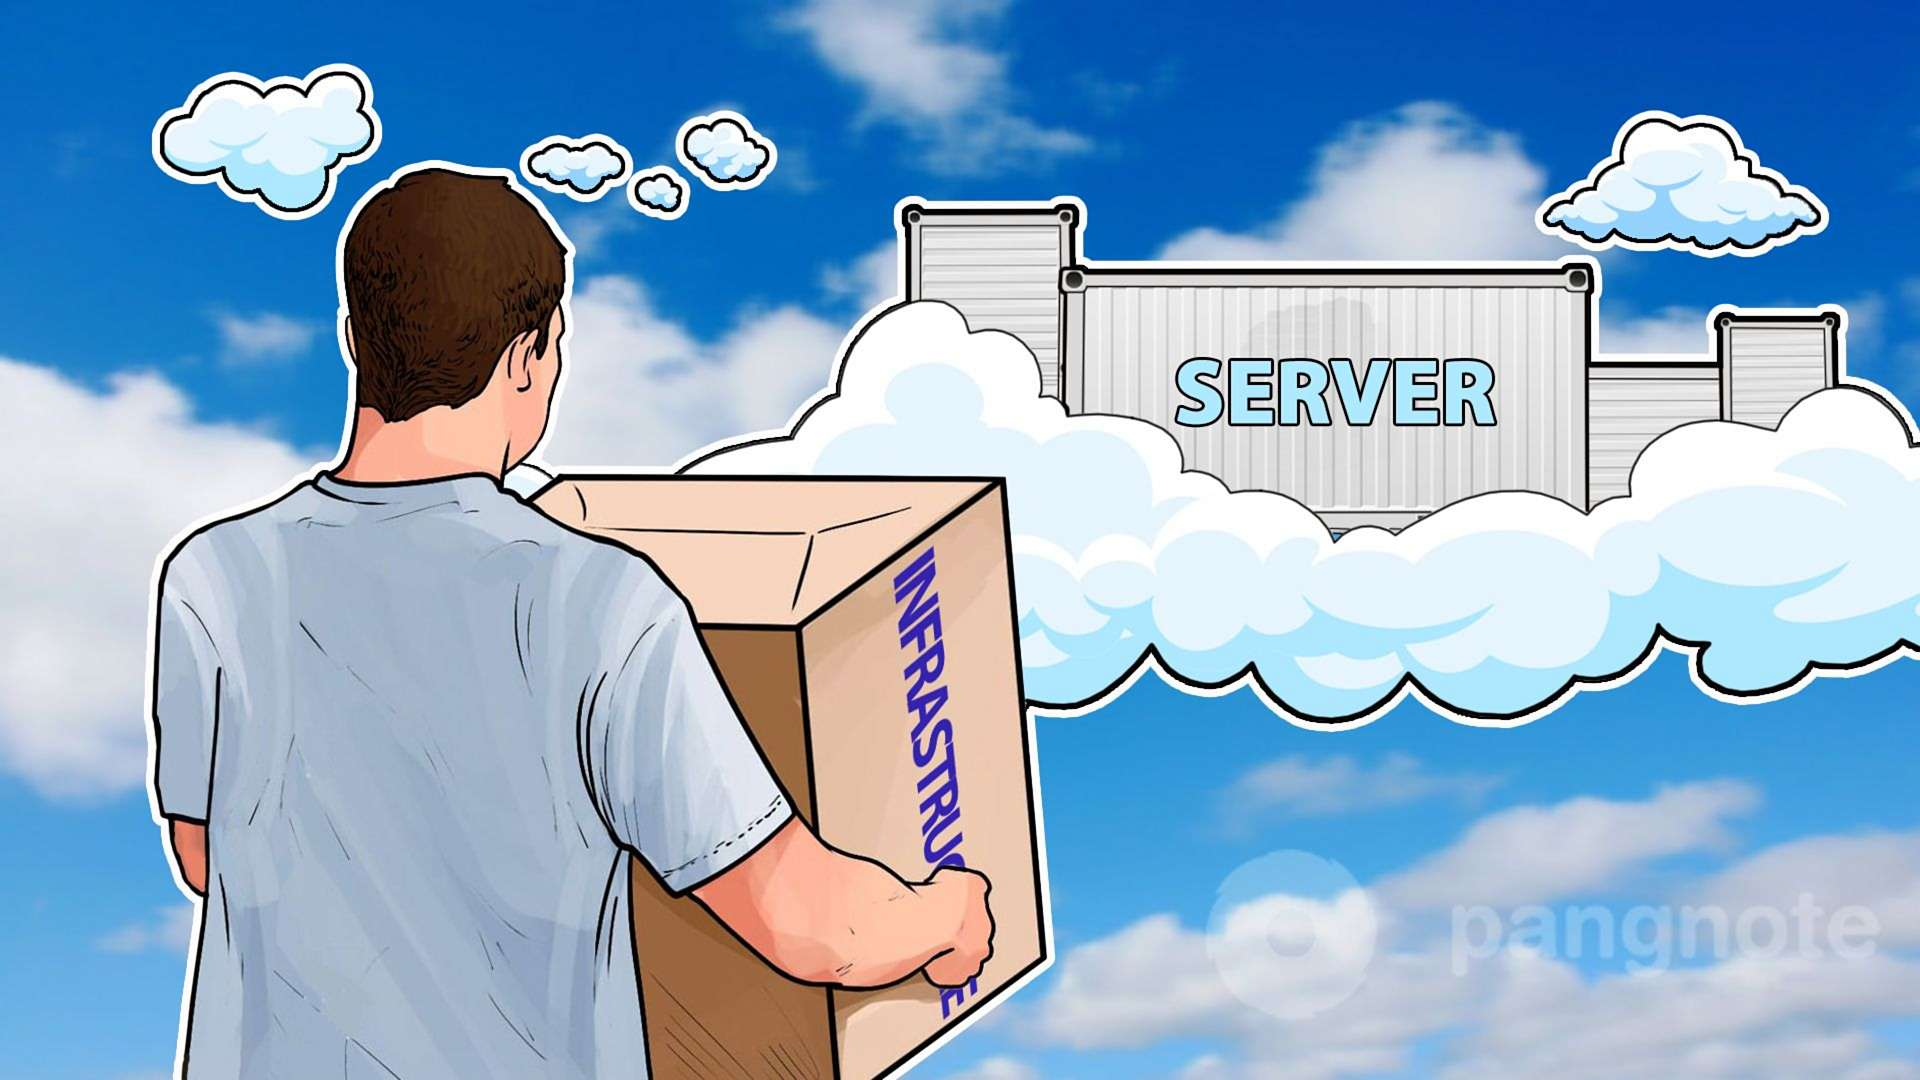 How to transfer infrastructure to the cloud and choose cloud server providers?